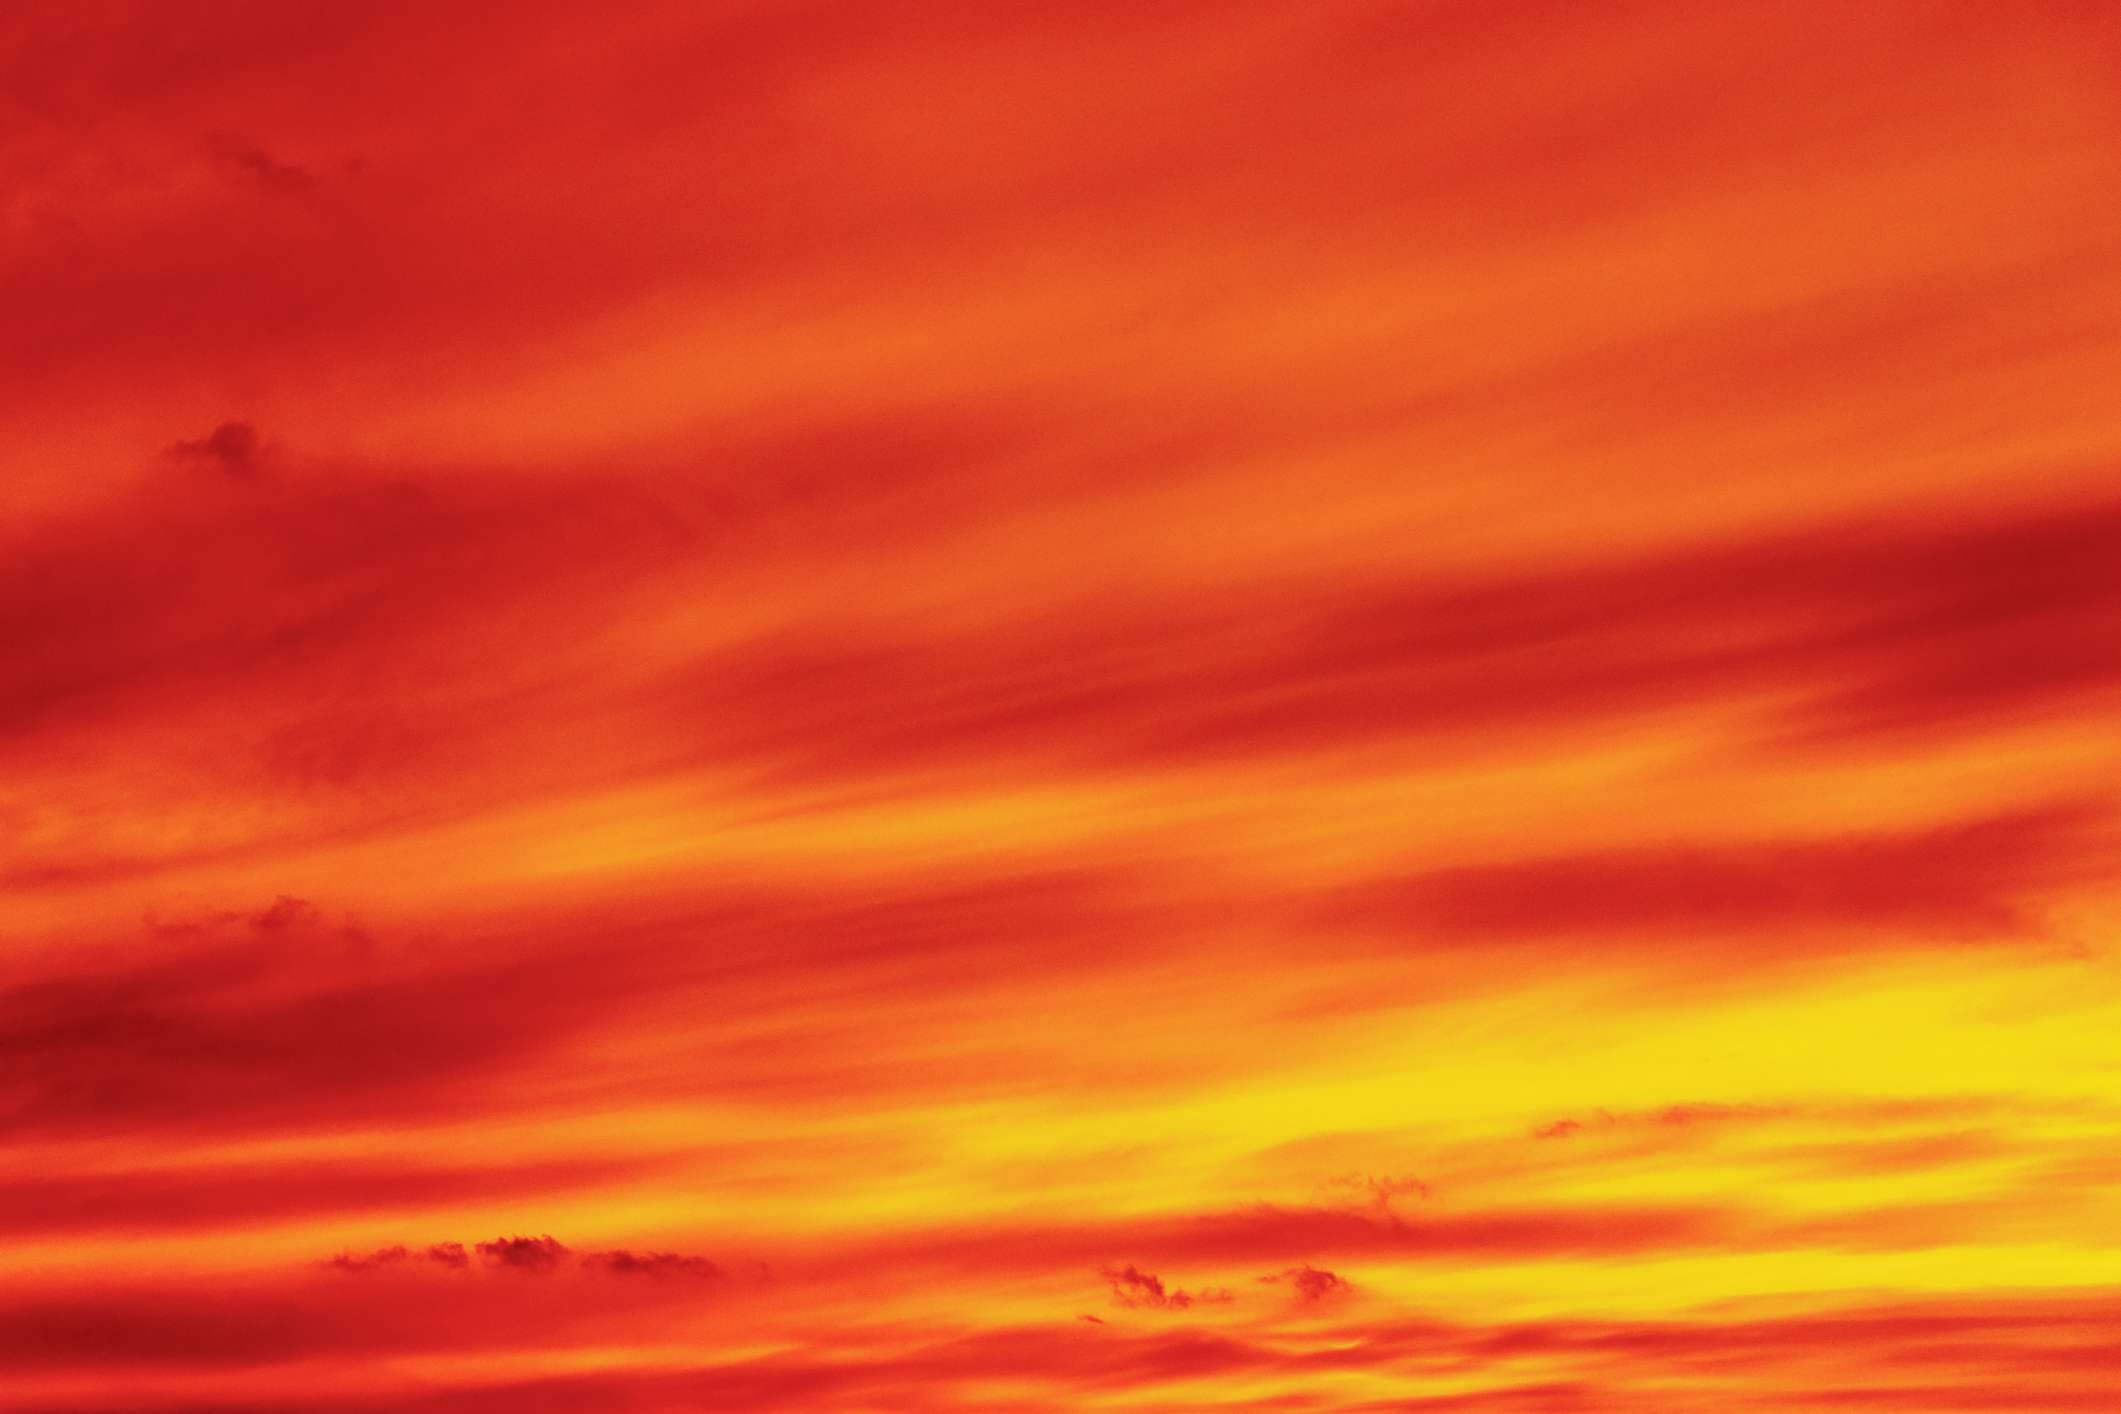 sky is colored deep red, orange, and yellow creating warm and vitalizing atmosphere.